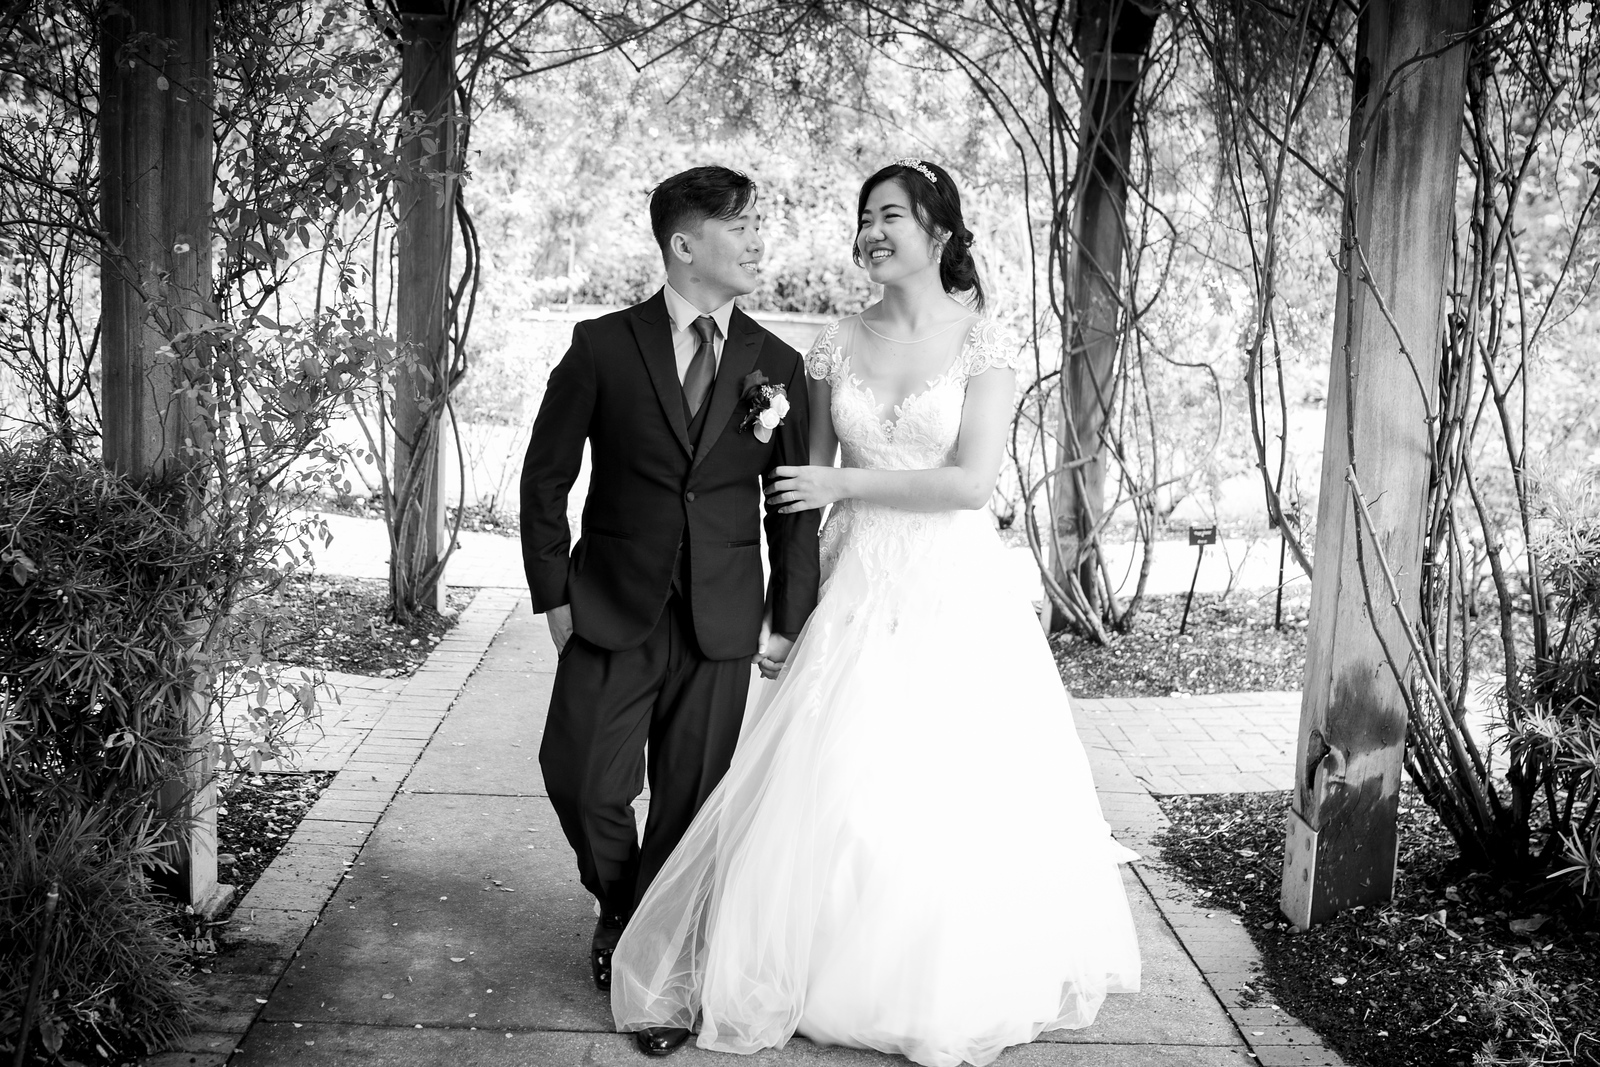 A bride and groom walking down through vined gardens locking arms and smiling at one another